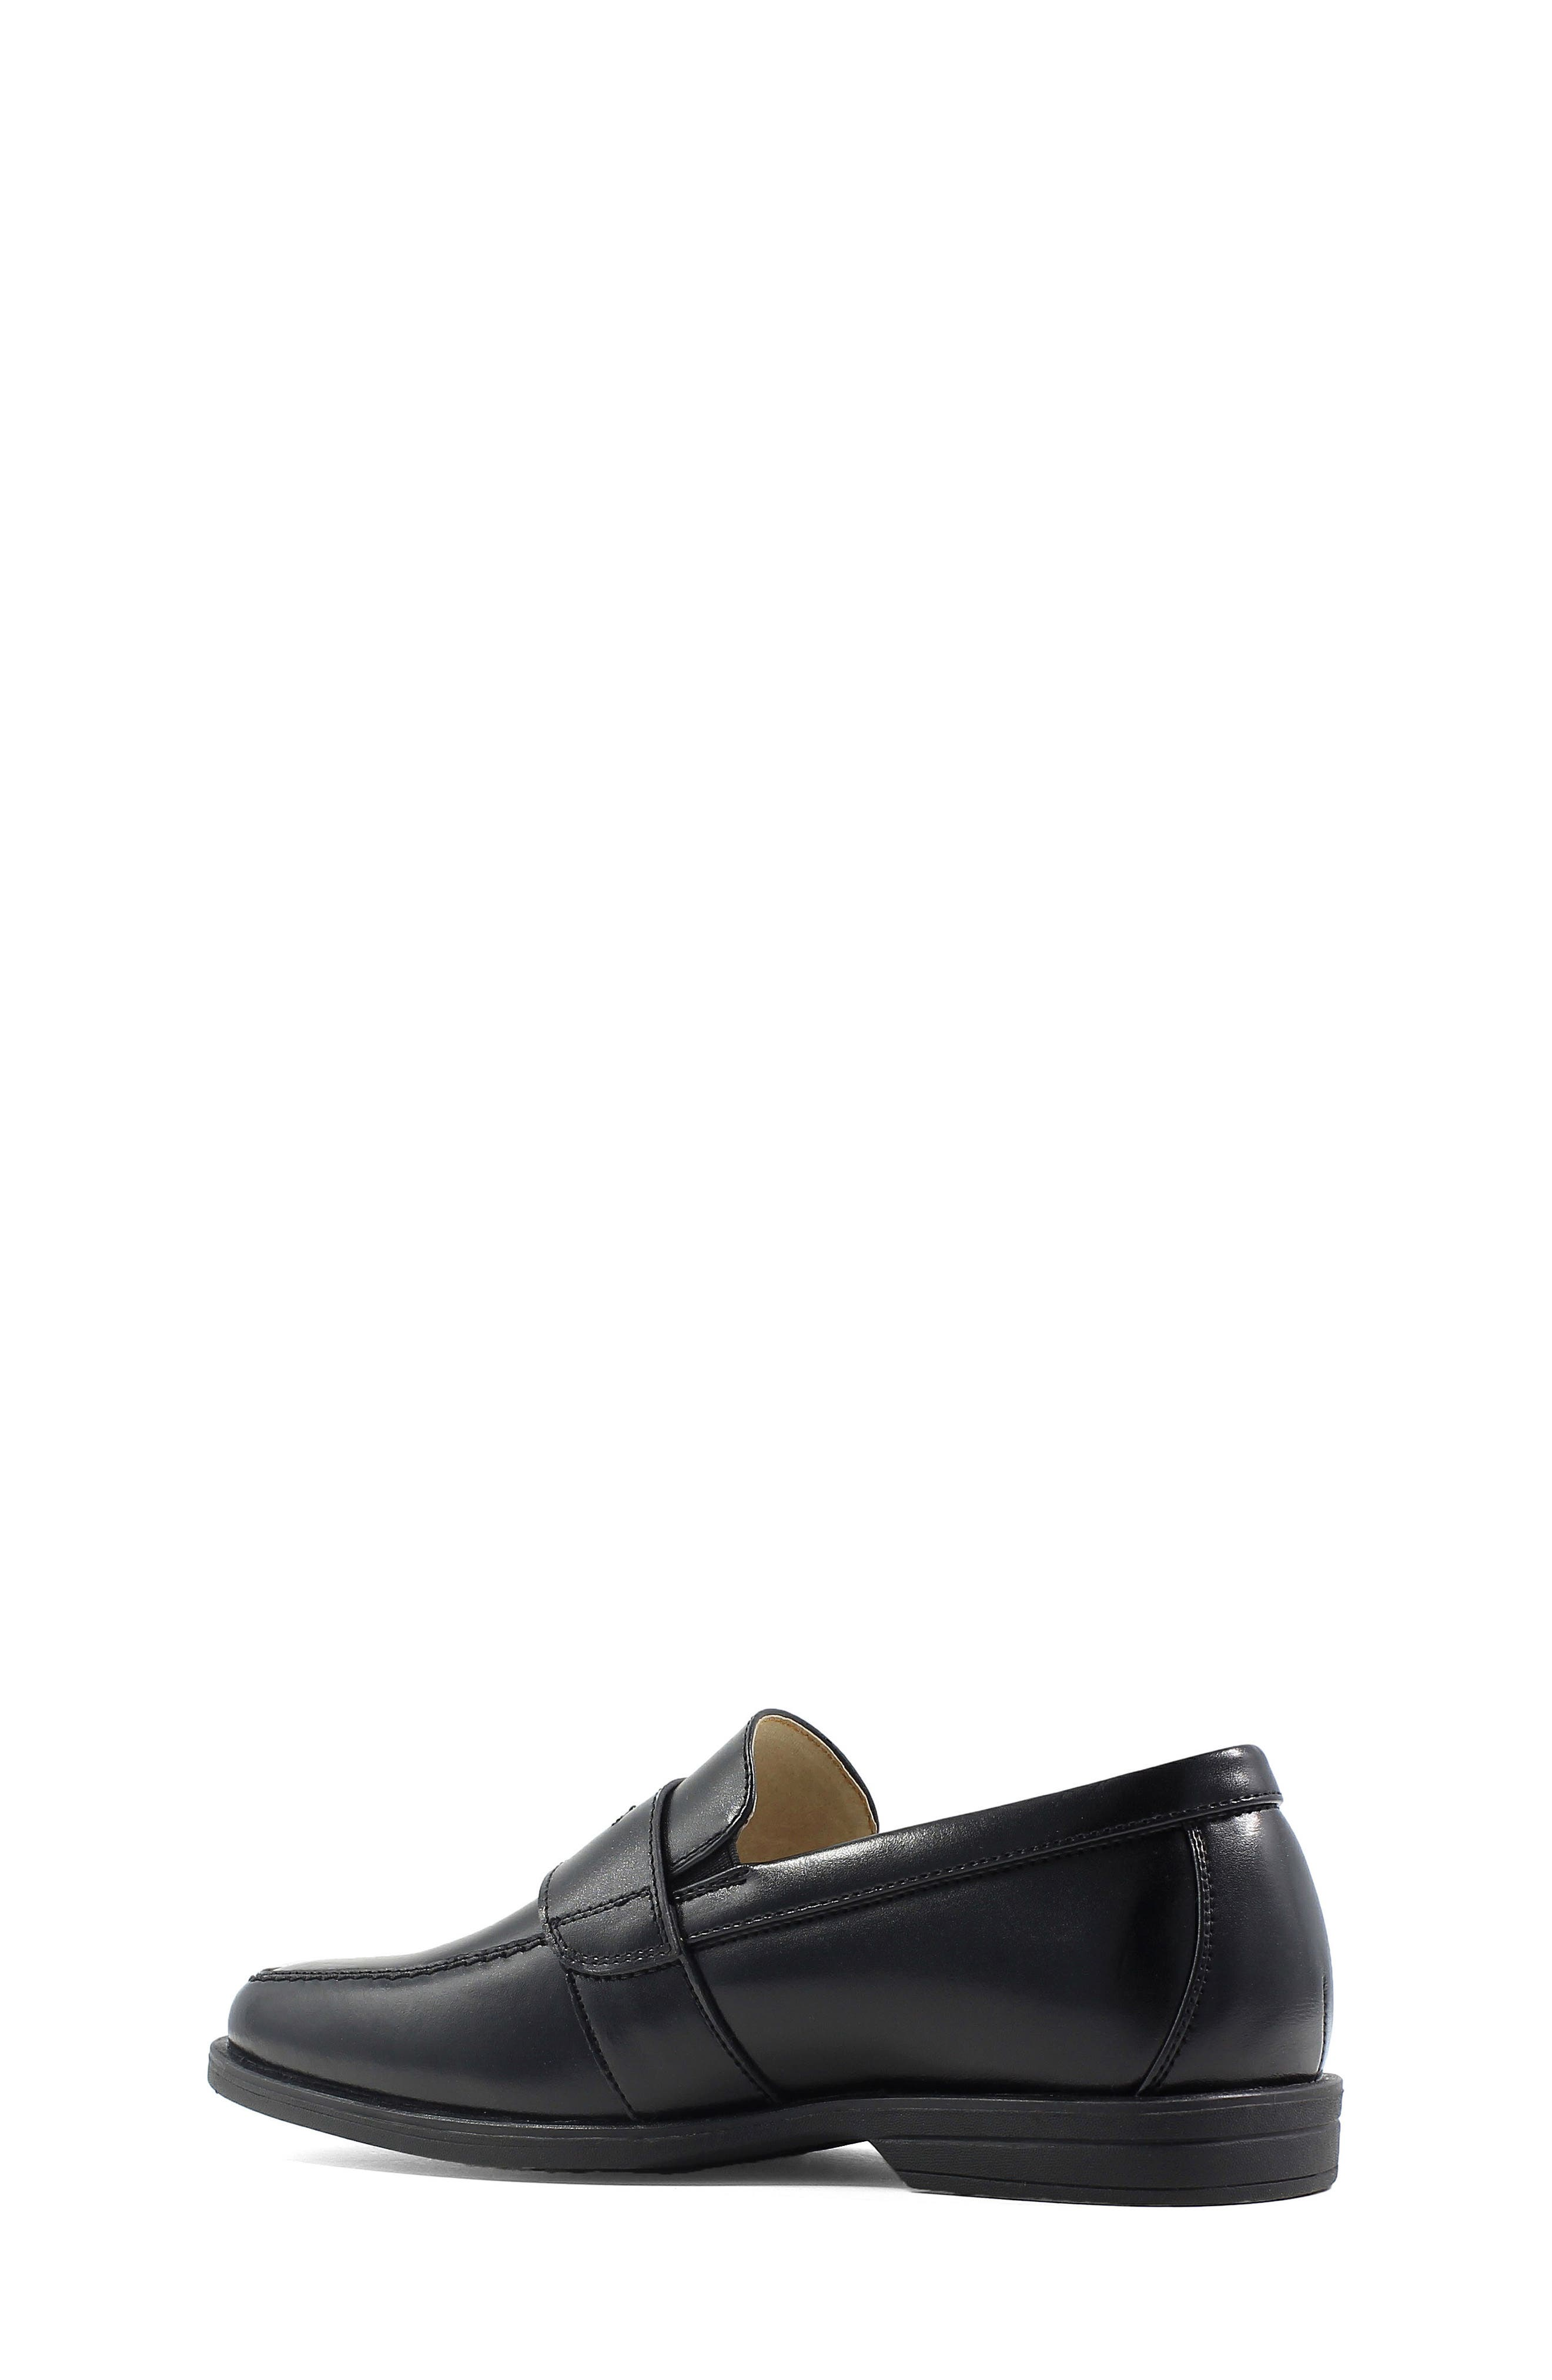 'Reveal' Penny Loafer,                             Alternate thumbnail 2, color,                             BLACK